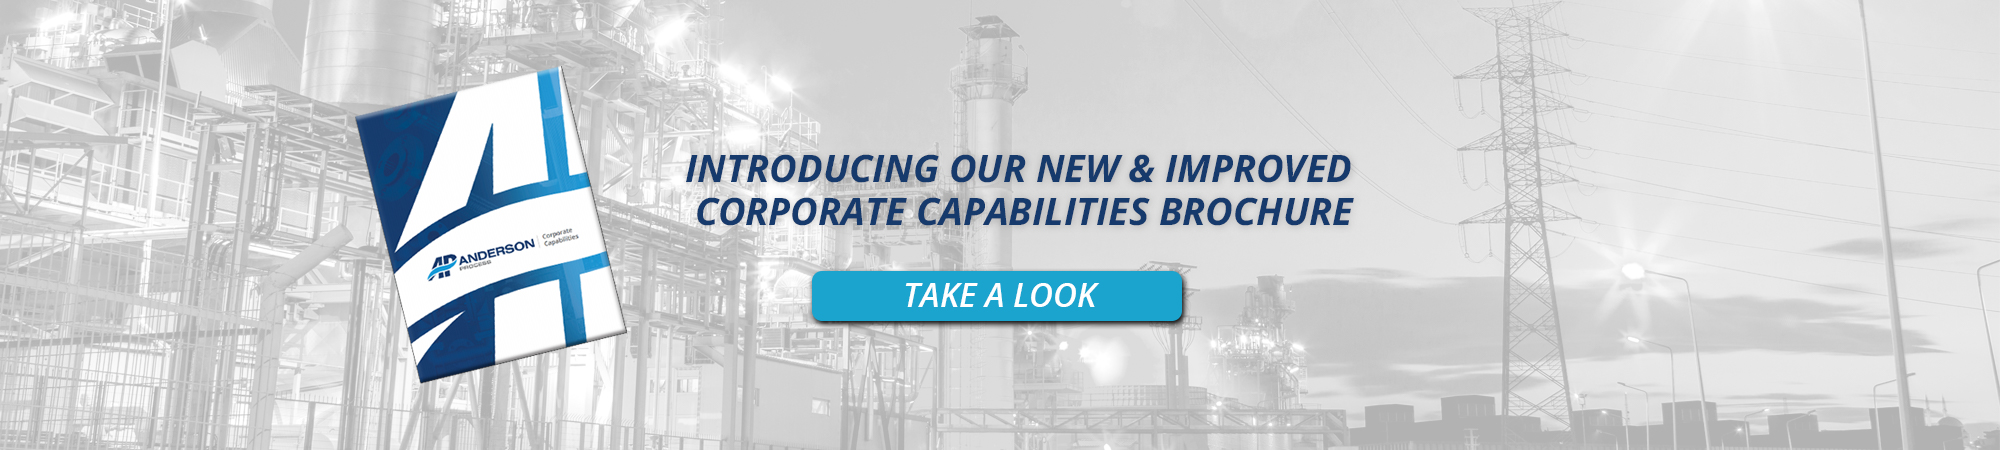 Introducing Our New Corporate Capabilities Brochure